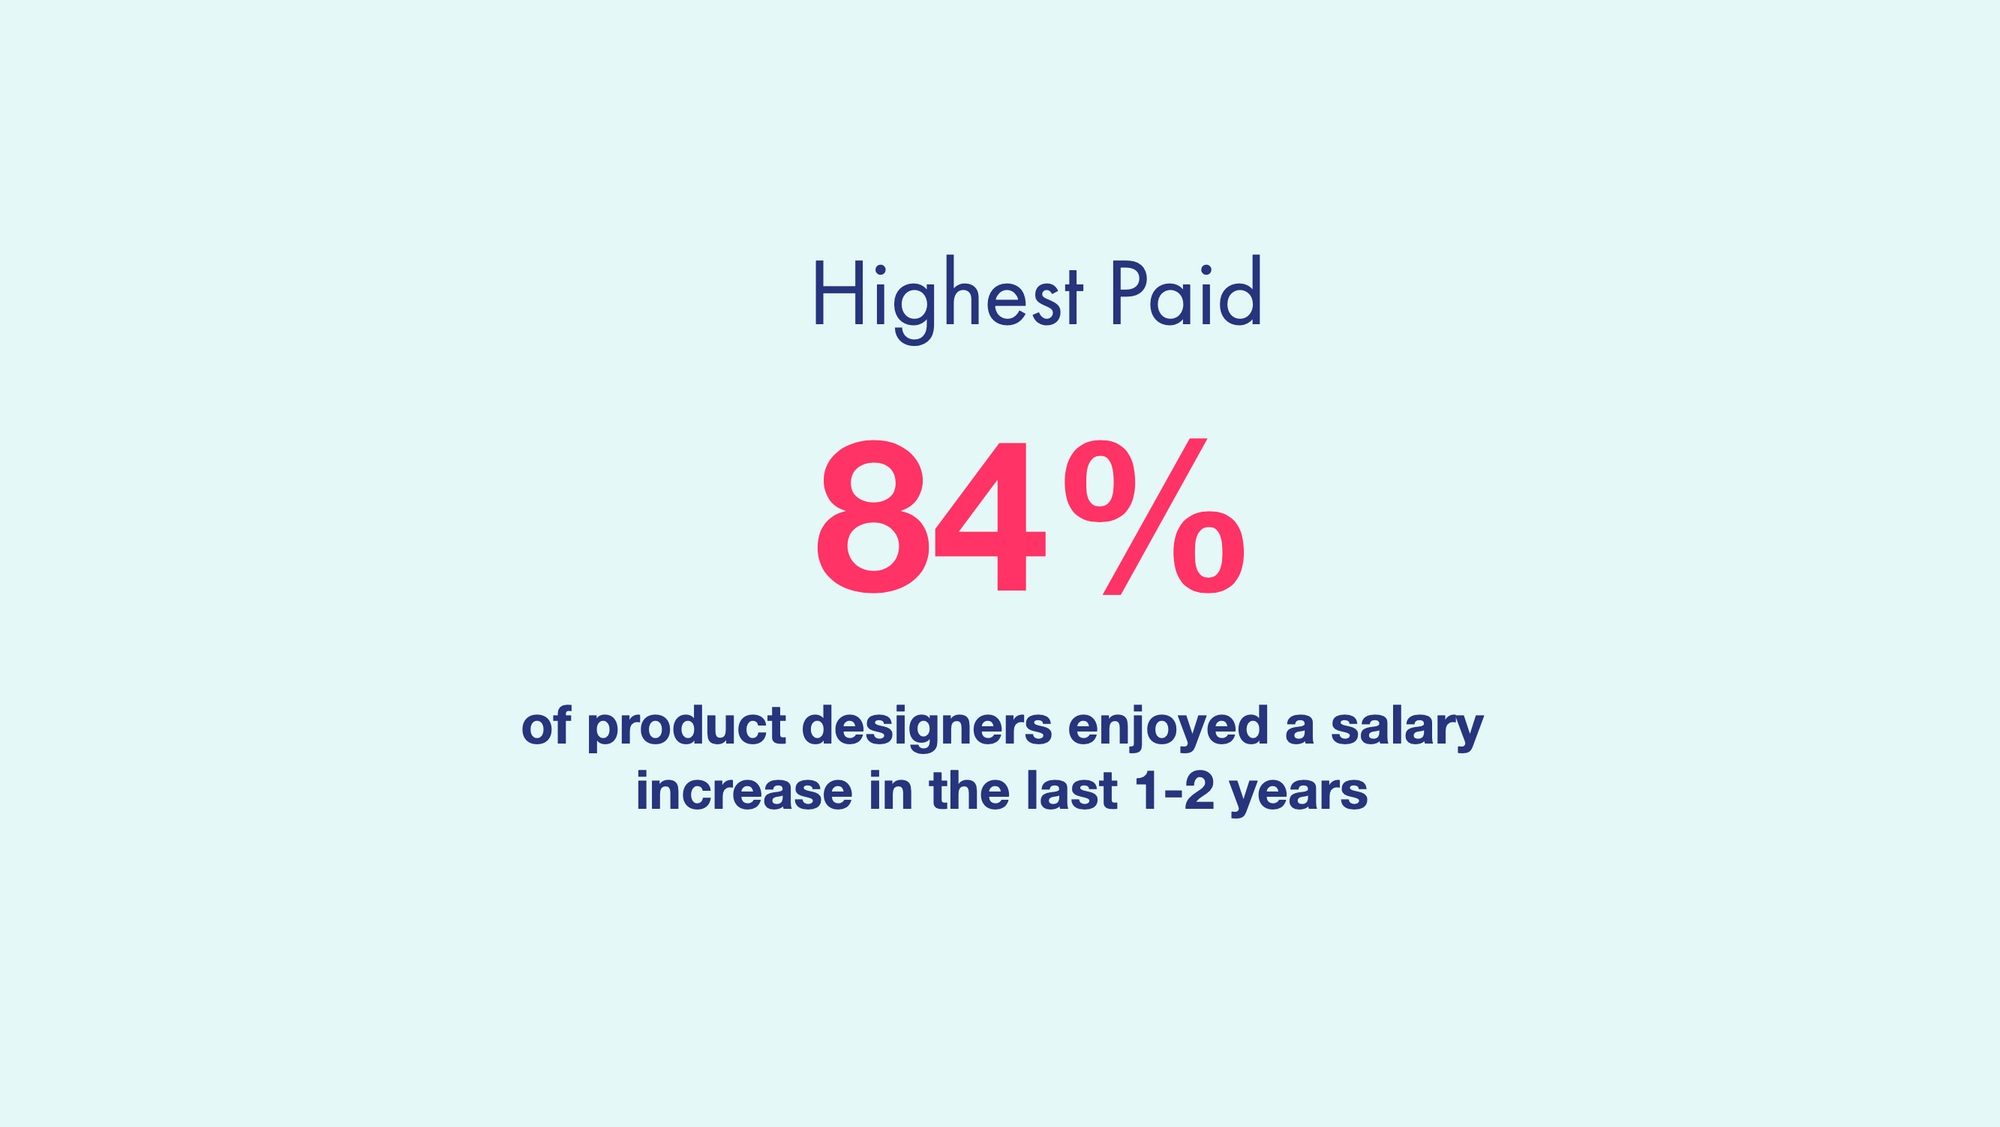 Blue background with pink text showing 84% salary increase